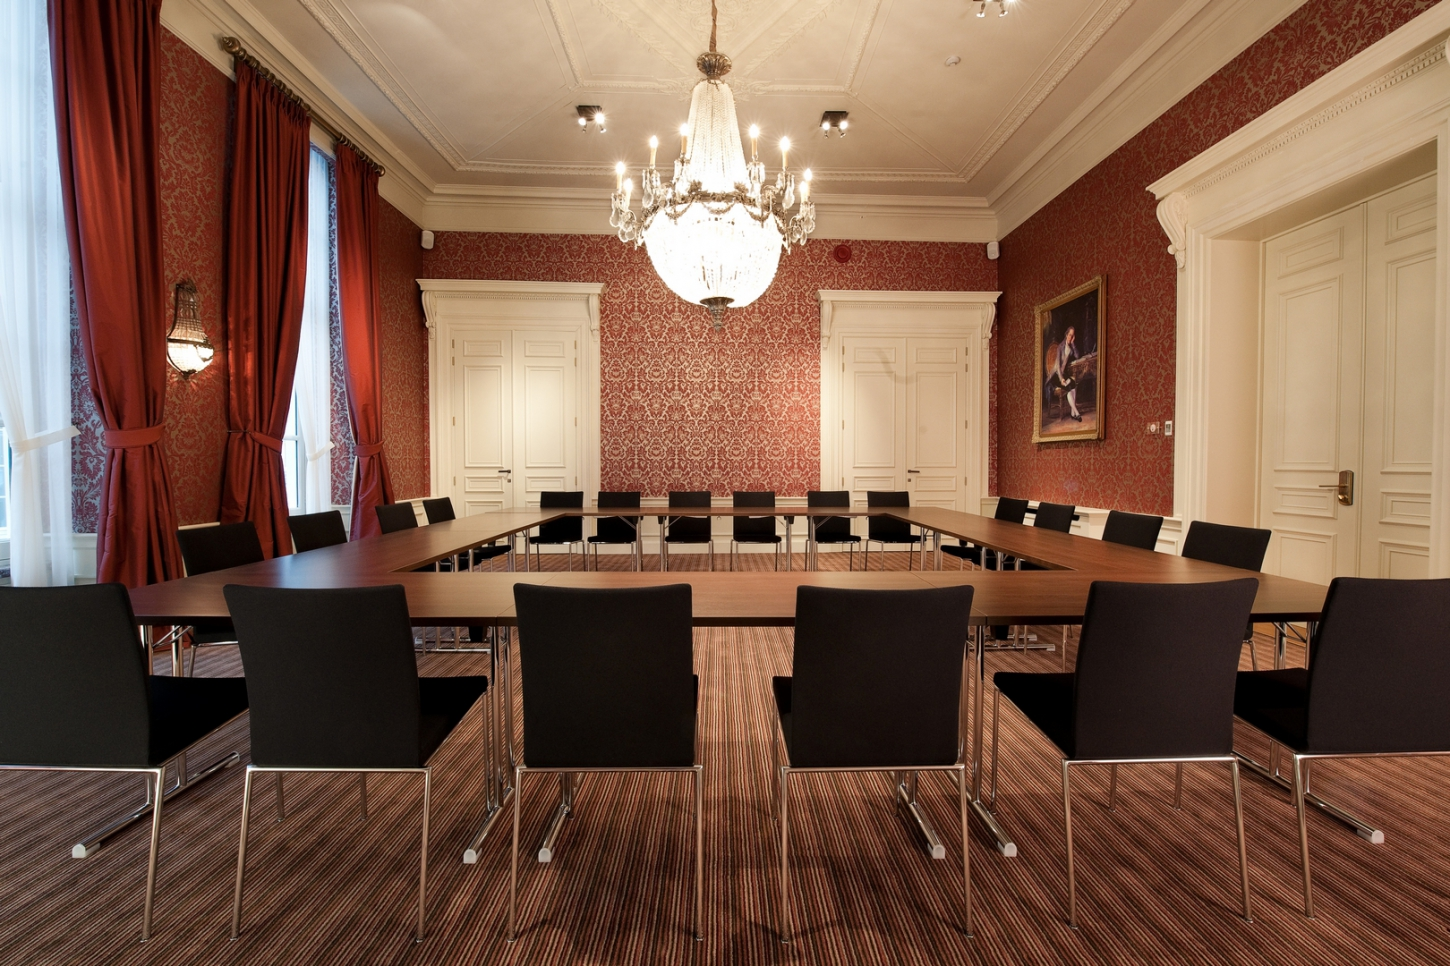 Boardrooms in a luxury hotel in Bruges